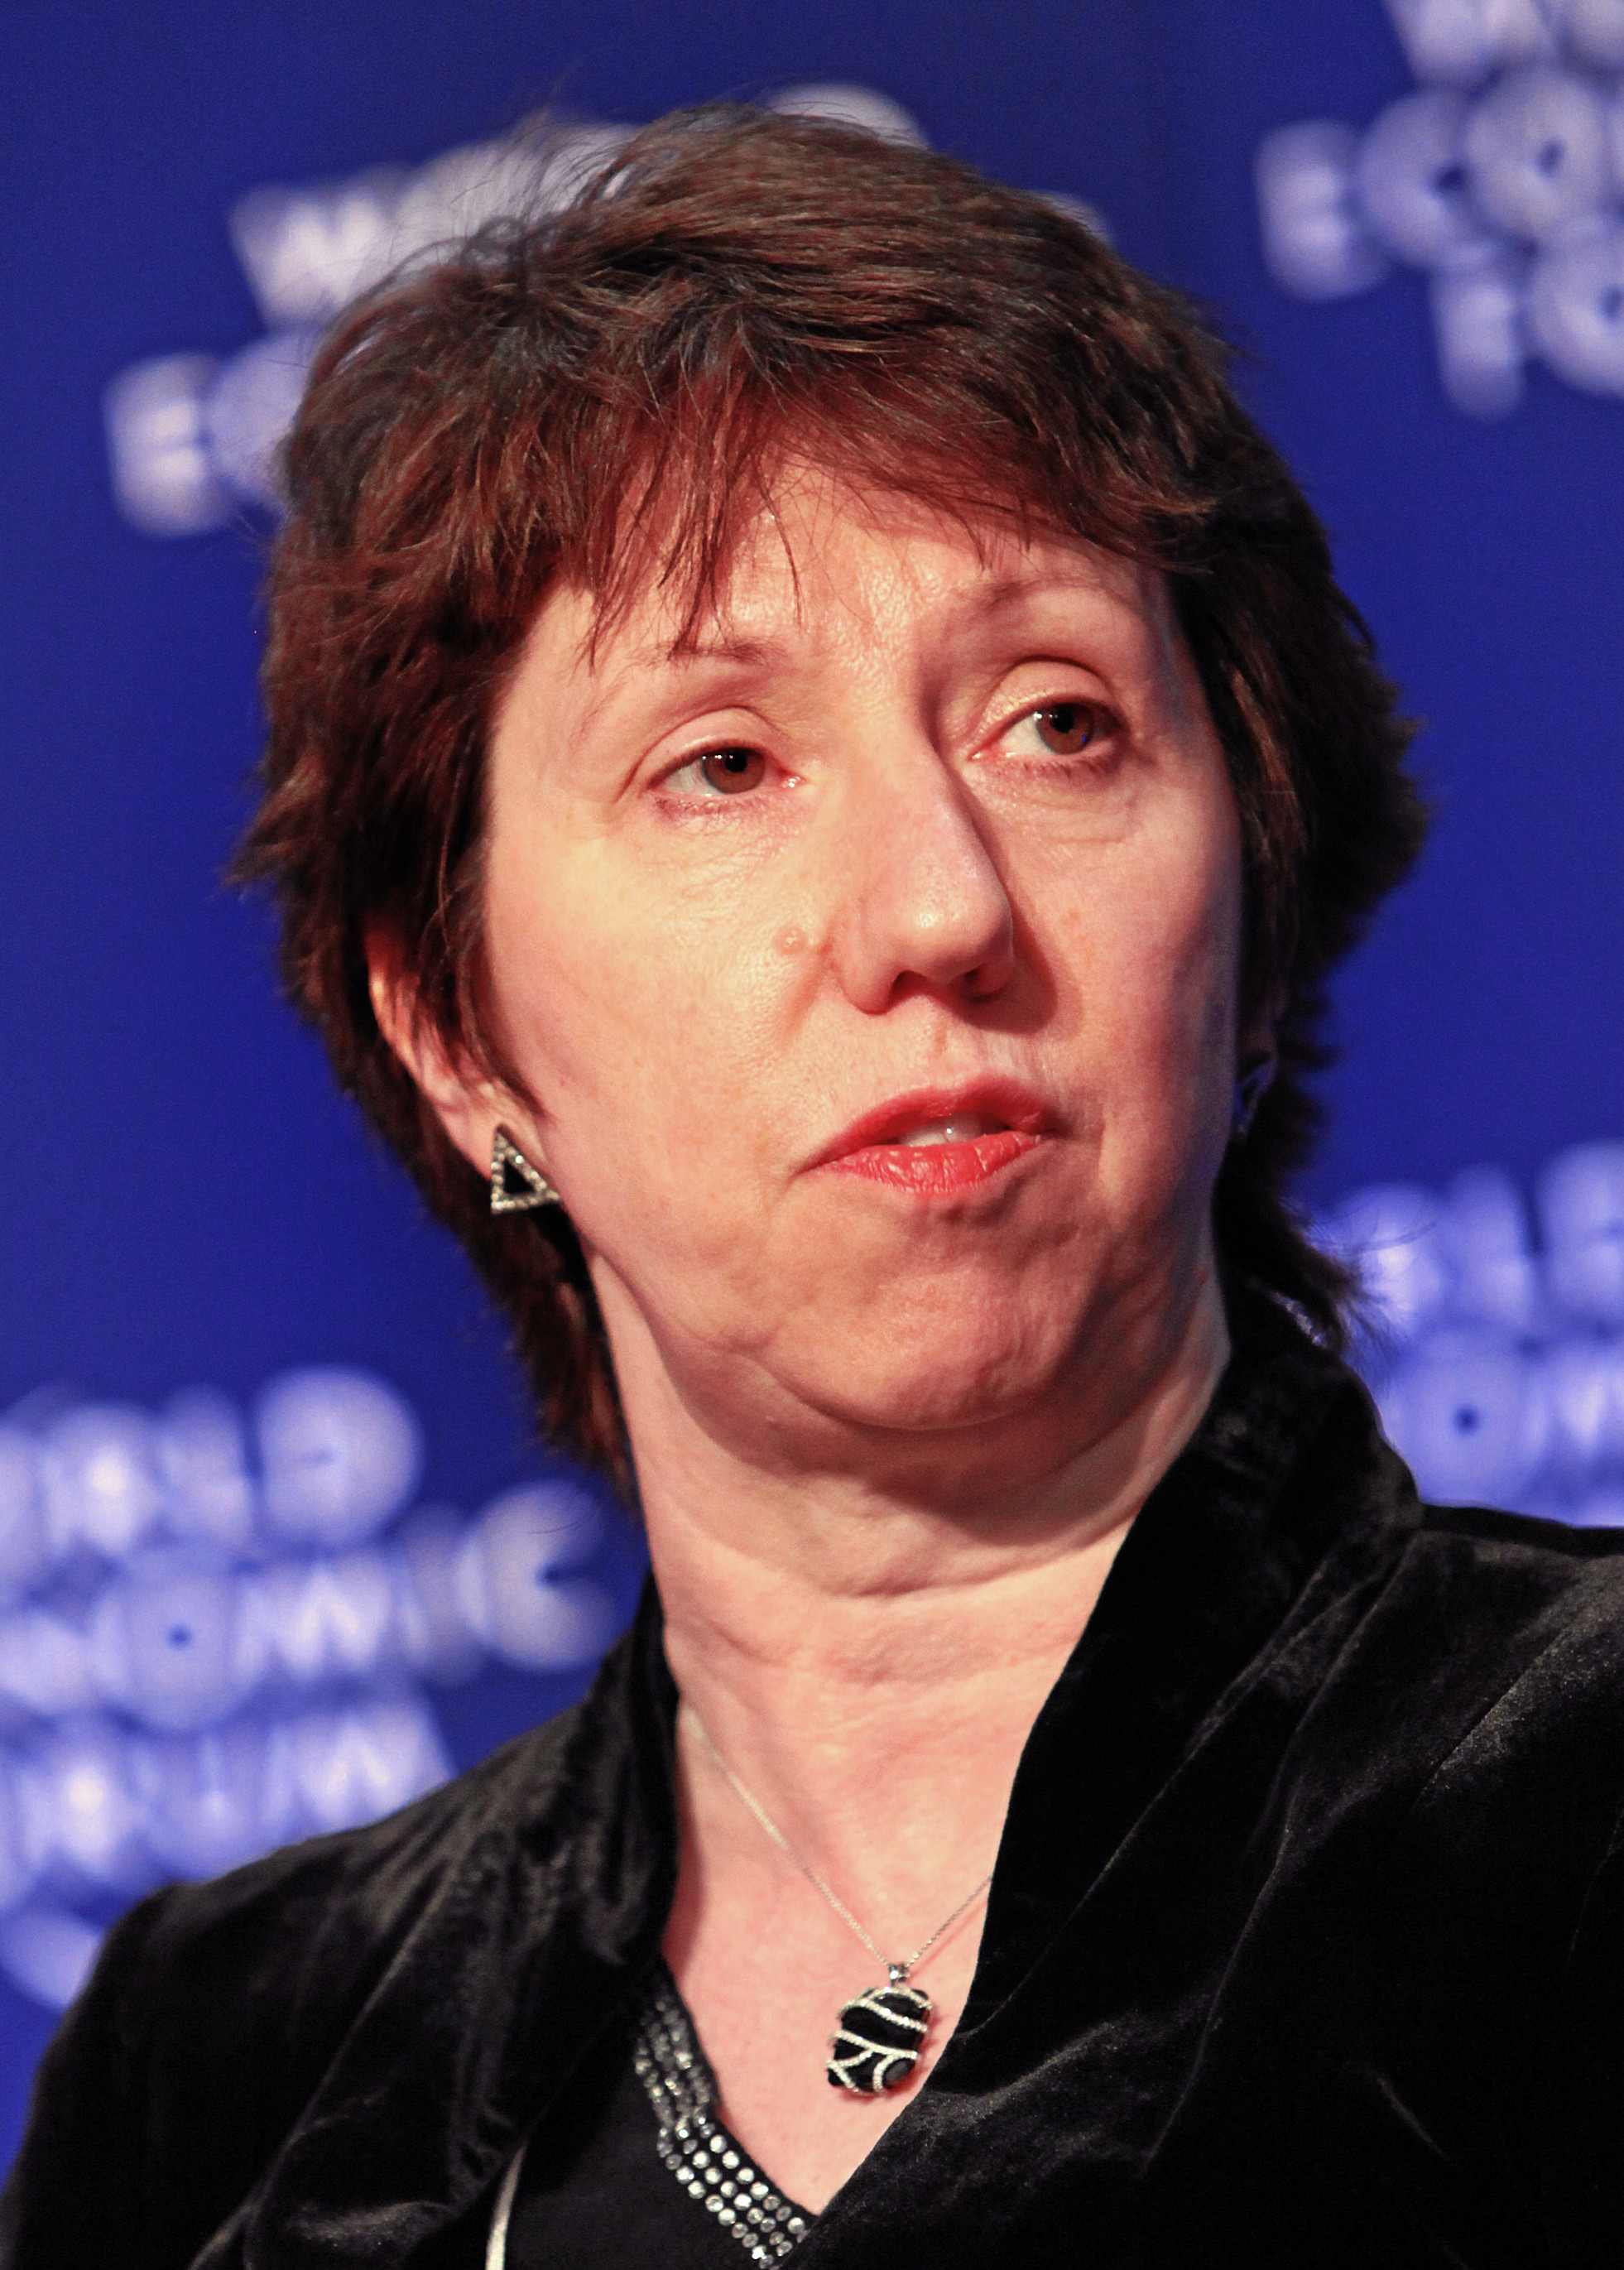 The 64-year old daughter of father (?) and mother(?) Catherine Ashton in 2021 photo. Catherine Ashton earned a  million dollar salary - leaving the net worth at 2 million in 2021